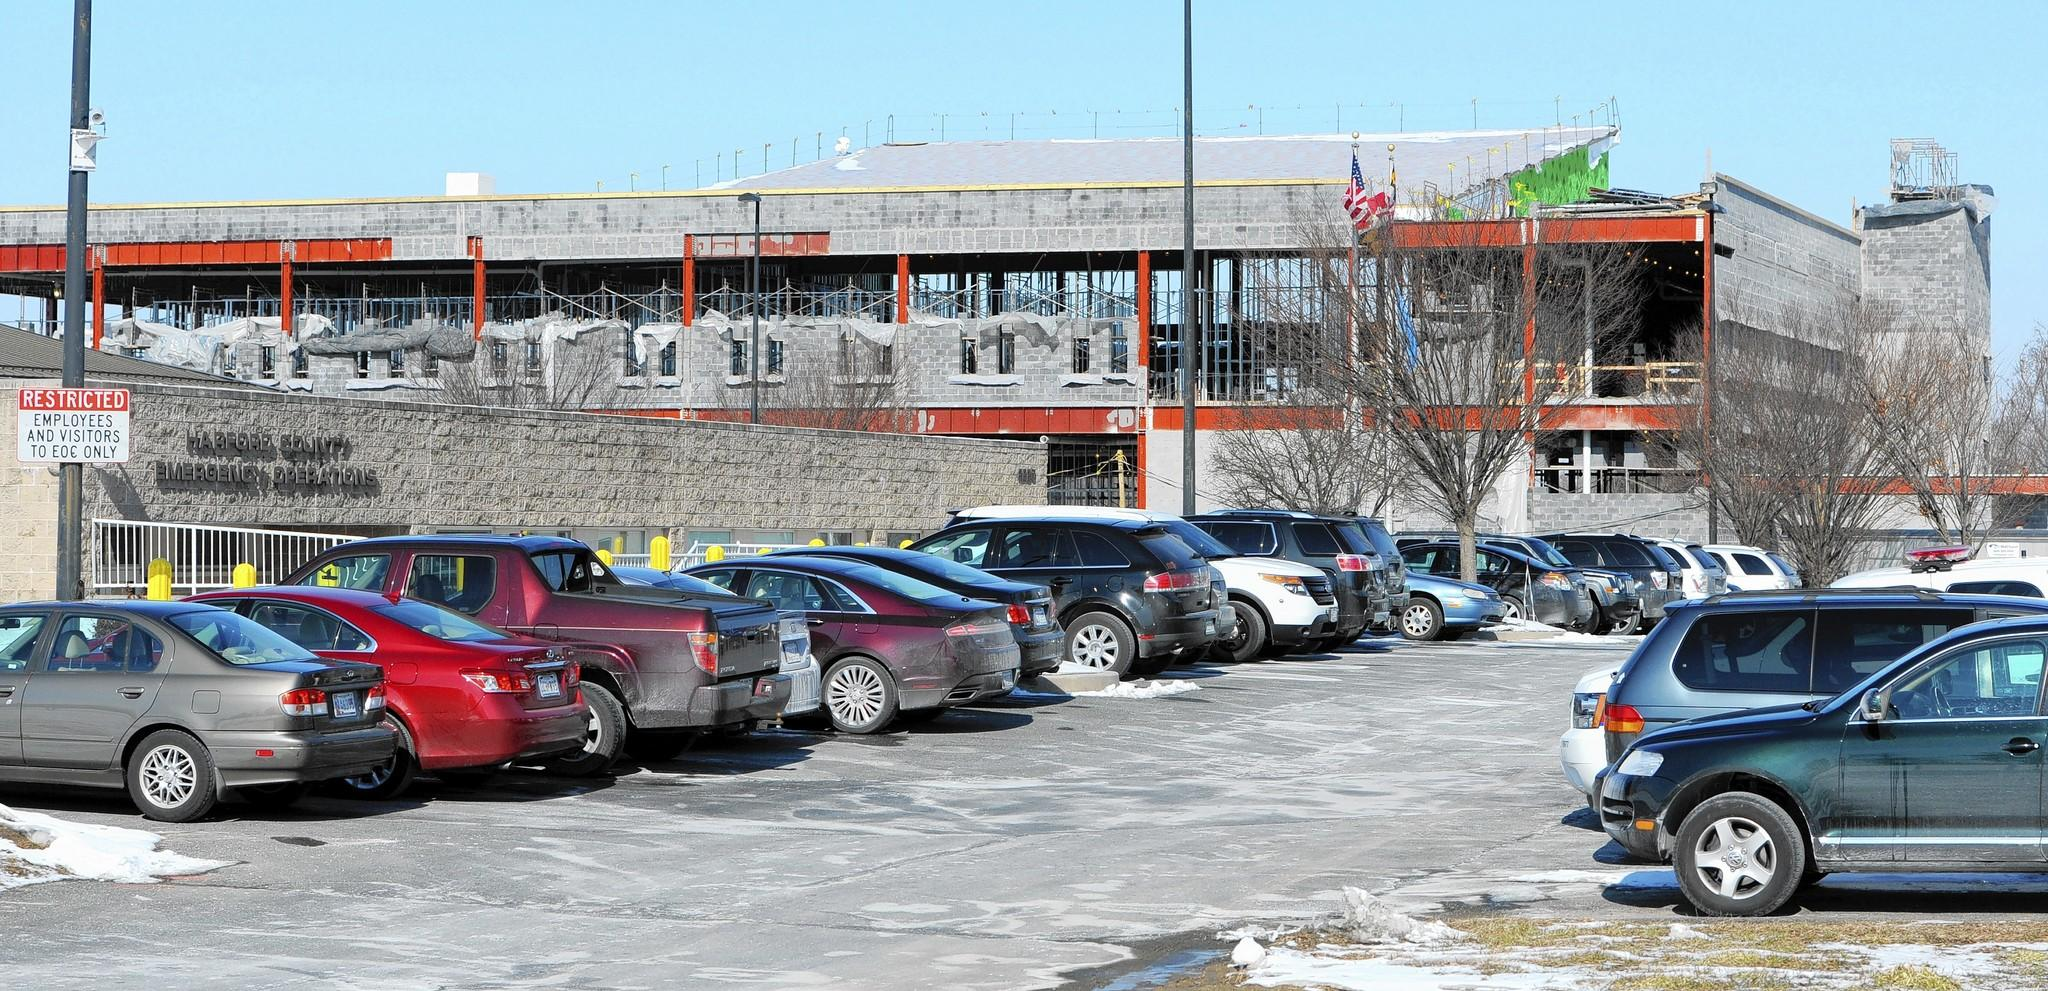 Bonds will be sold March 11 to be used in part for the ongoing construction of a new Harford County Emergency Operations Center. The county learned this week it had received the highest ratings possible for the $40 million sale on March 11.